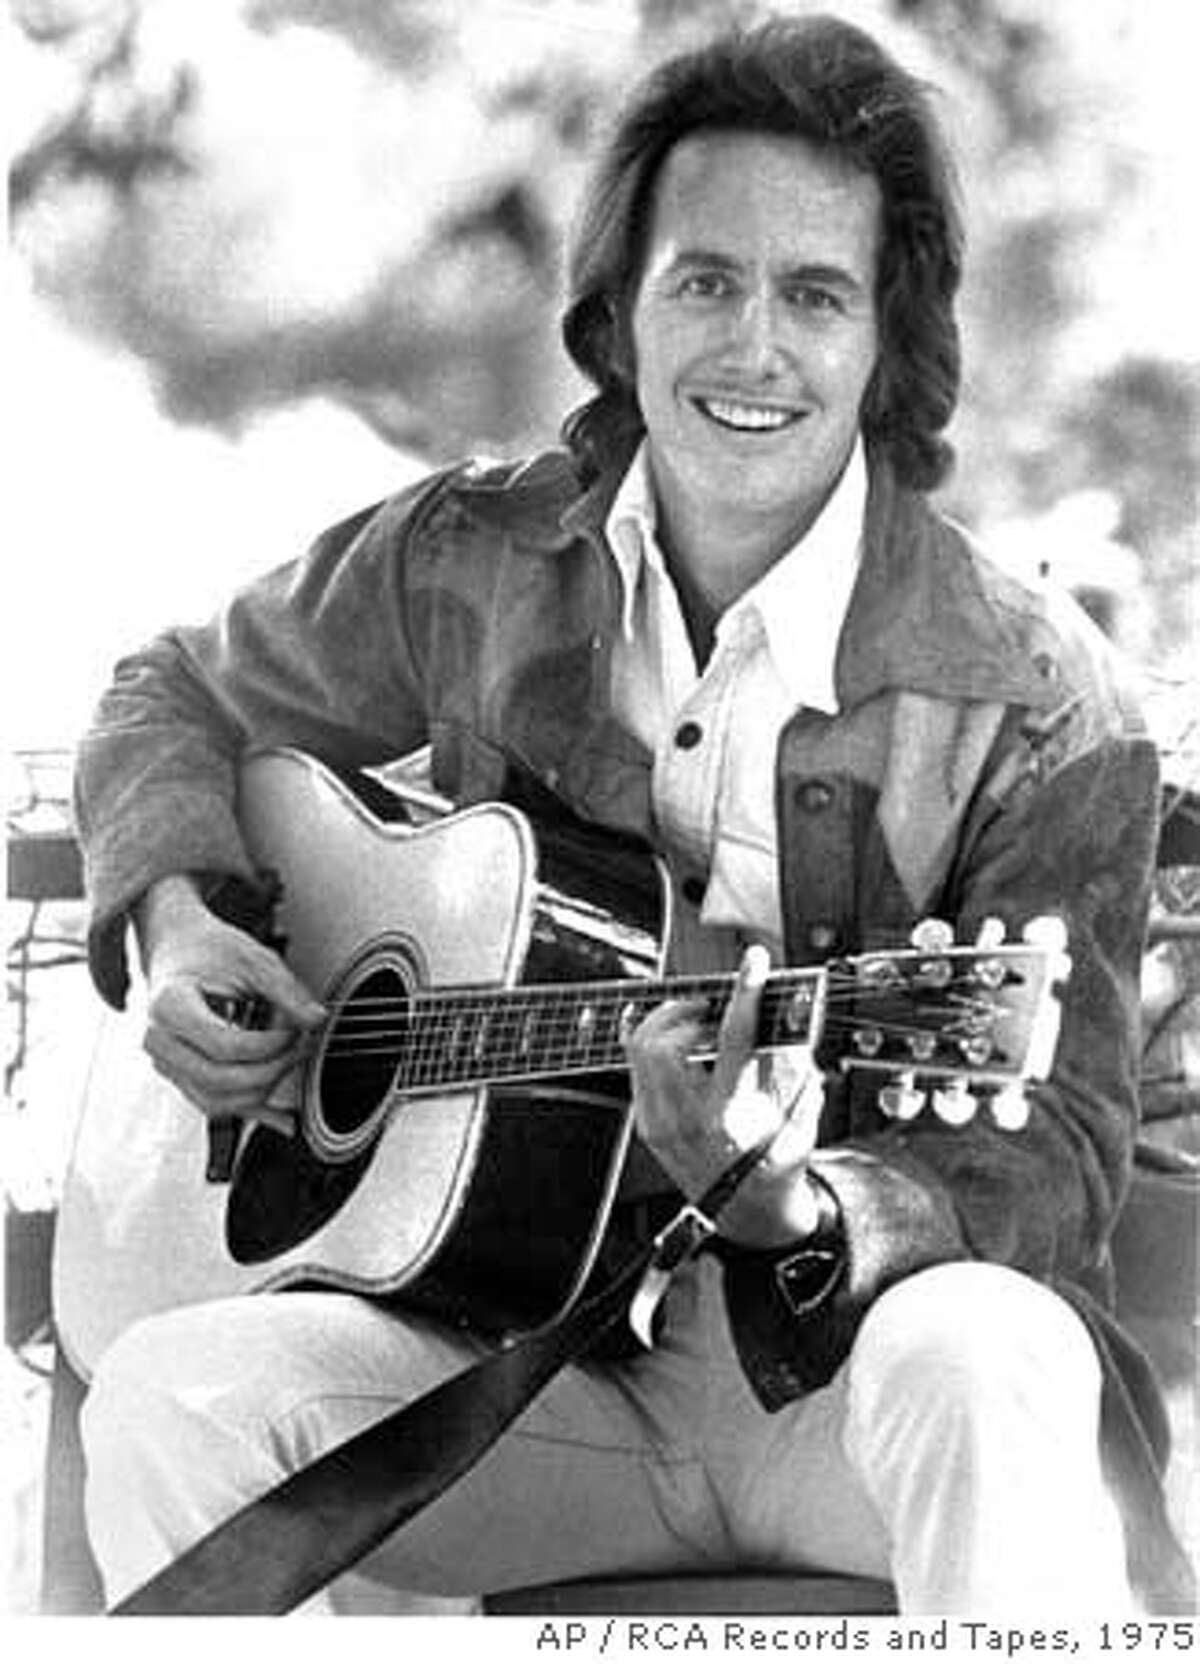 ** FILE ** This 1975 file picture shows musician John Stewart. Stewart, who came to prominence in the 1960s as a member of folk music's Kingston Trio, died Saturday, Jan. 19, 2008, at a San Diego hospital after suffering a brain aneurism. He was 68. (AP Photo/RCA Records and Tapes, File) **NO SALES** NO SALES